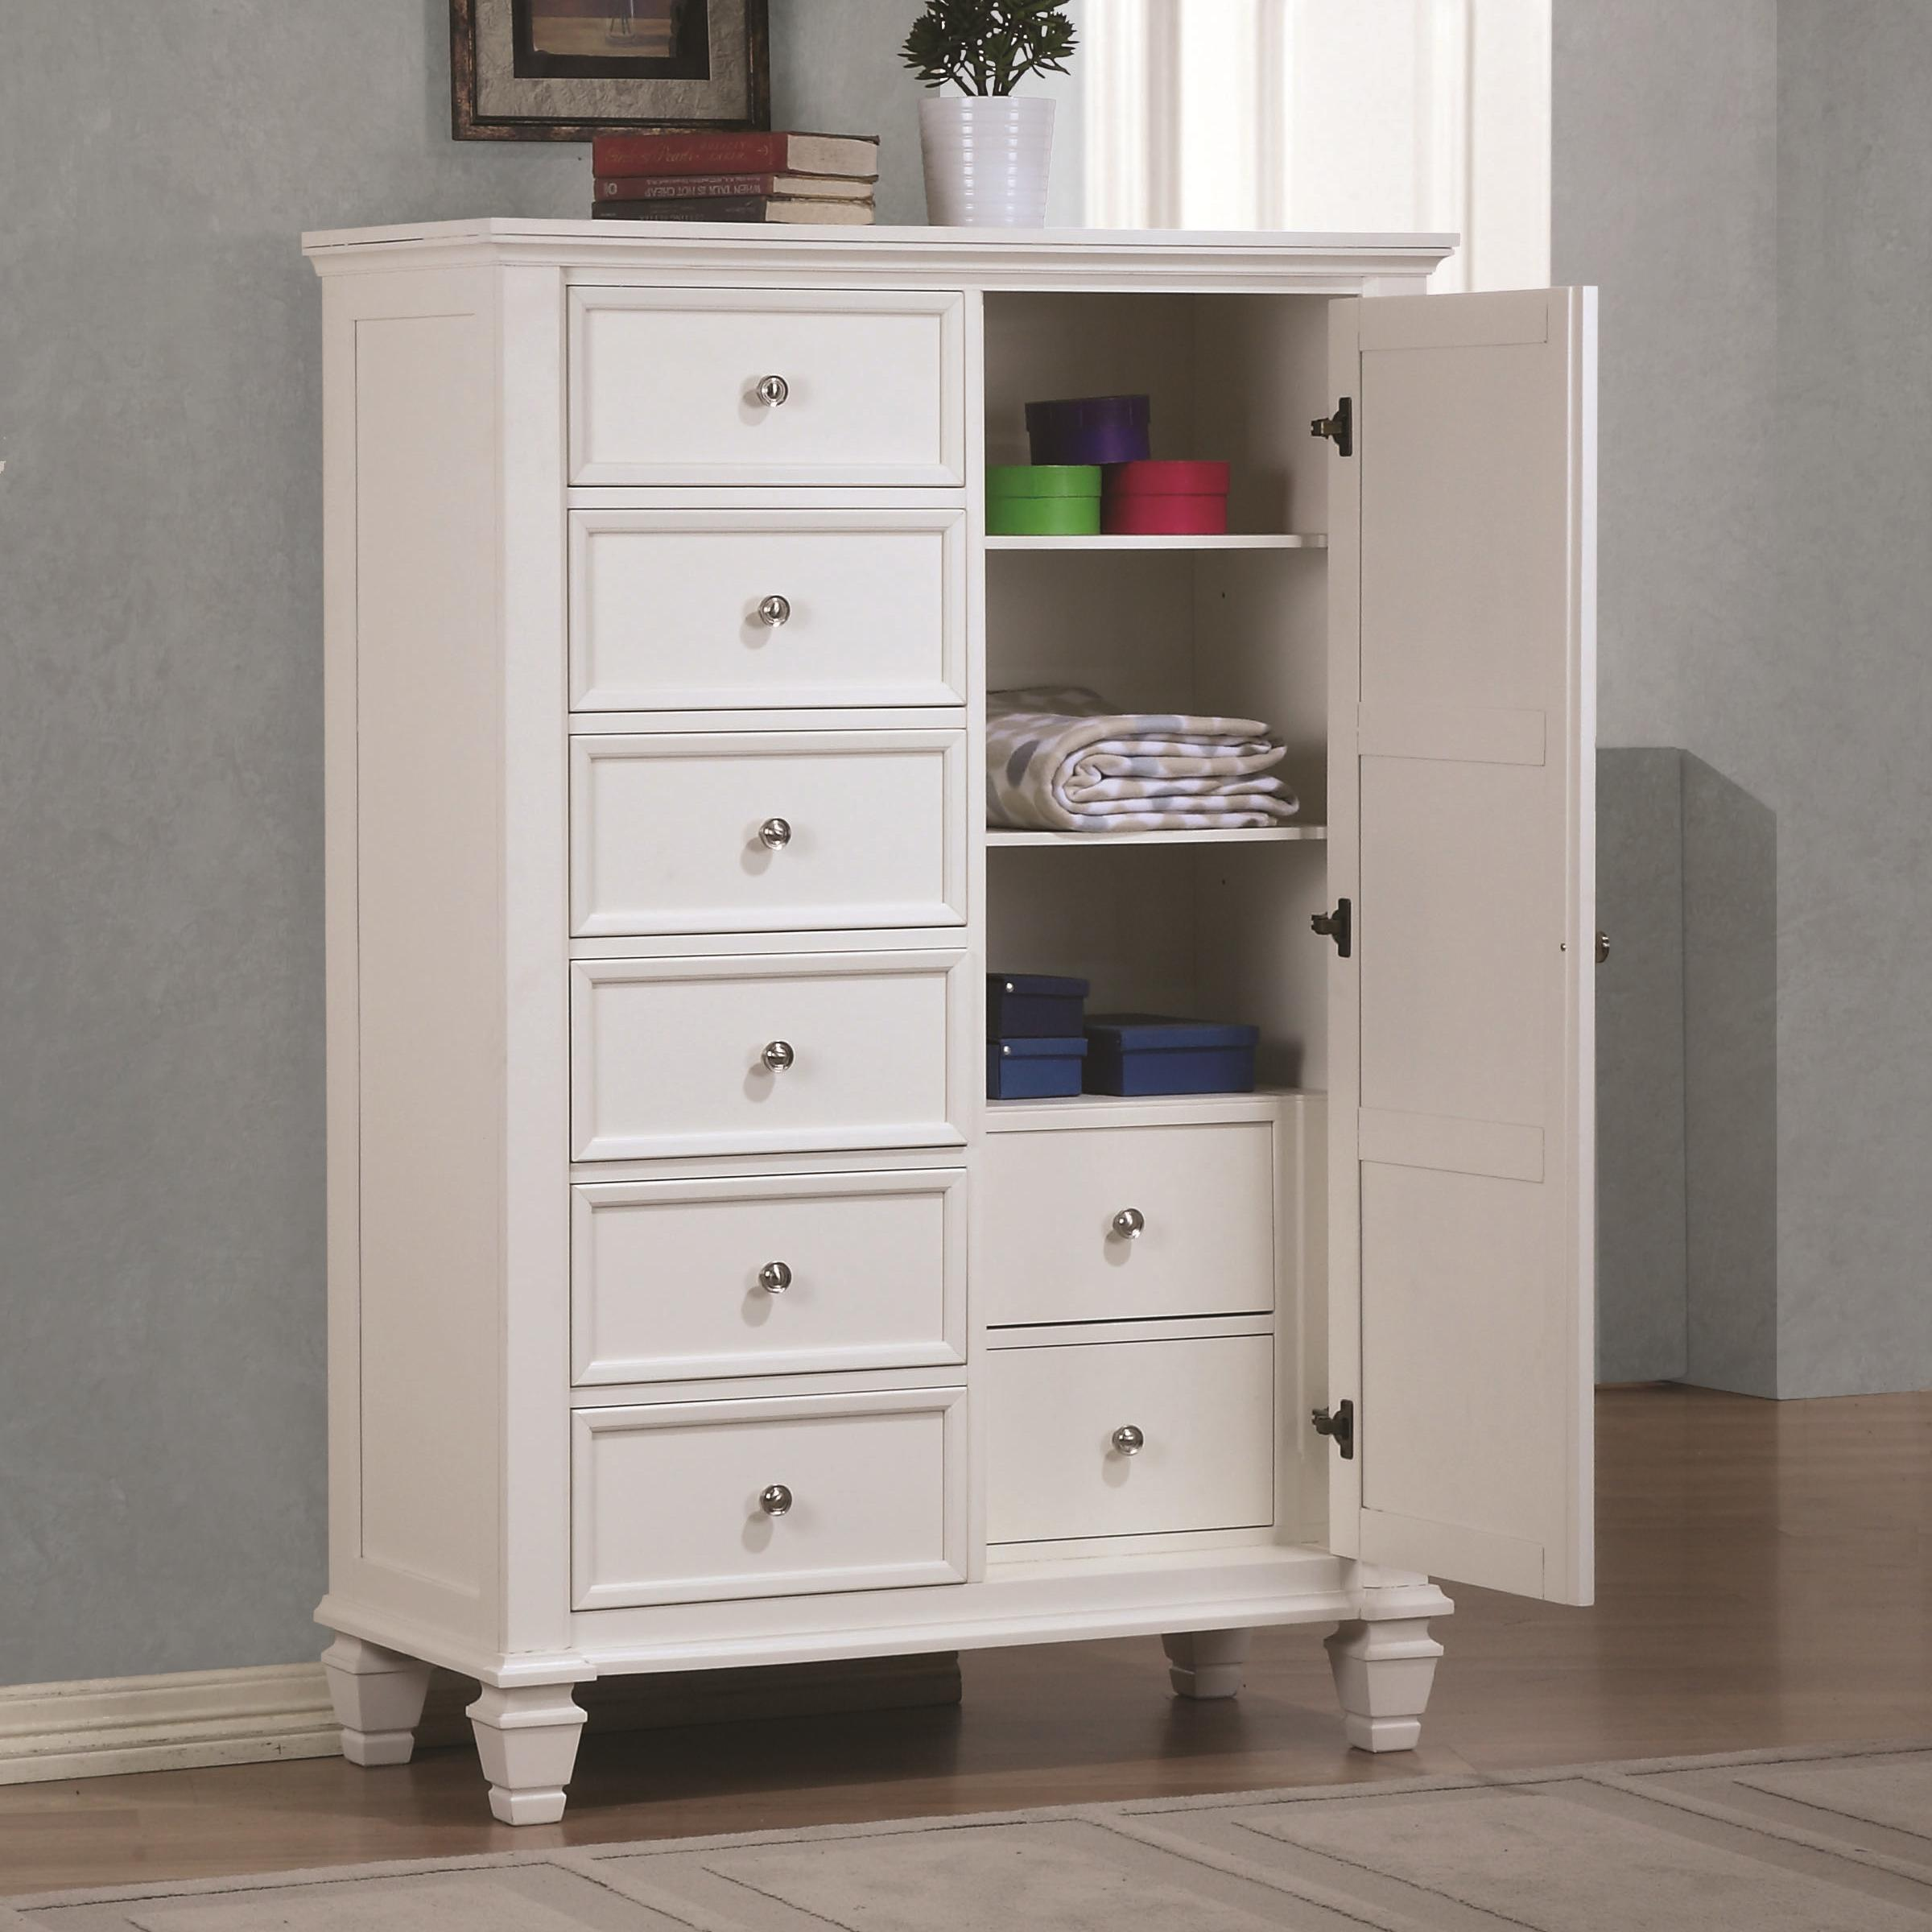 White Classic Door Dresser with Concealed Storage